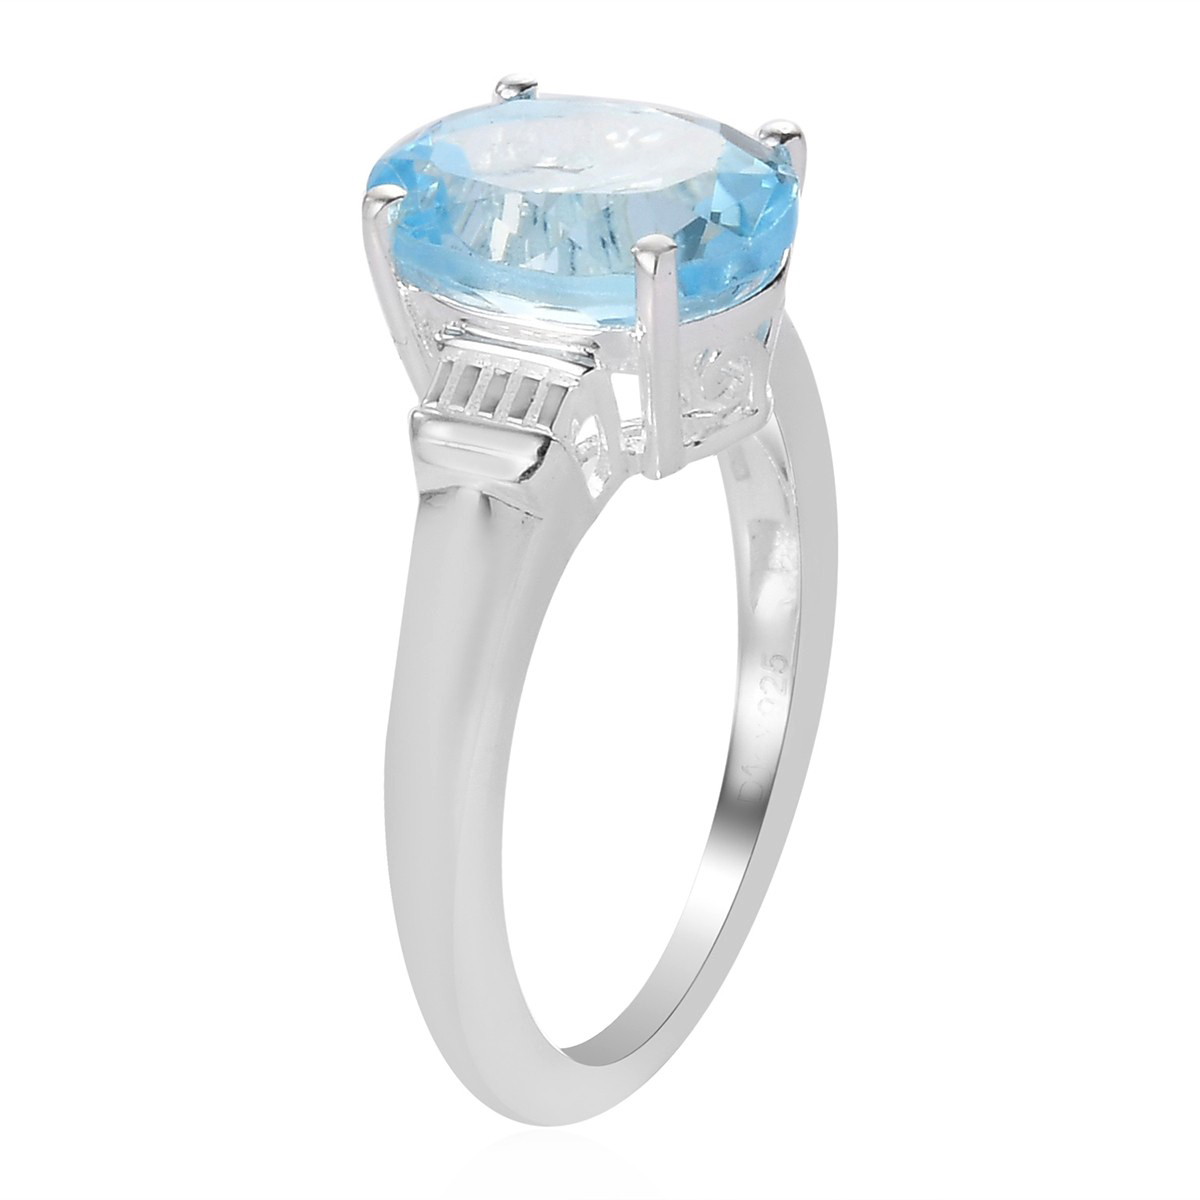 925-Sterling-Silver-Oval-Sky-Blue-Topaz-Solitaire-Promise-Ring-Jewelry thumbnail 4